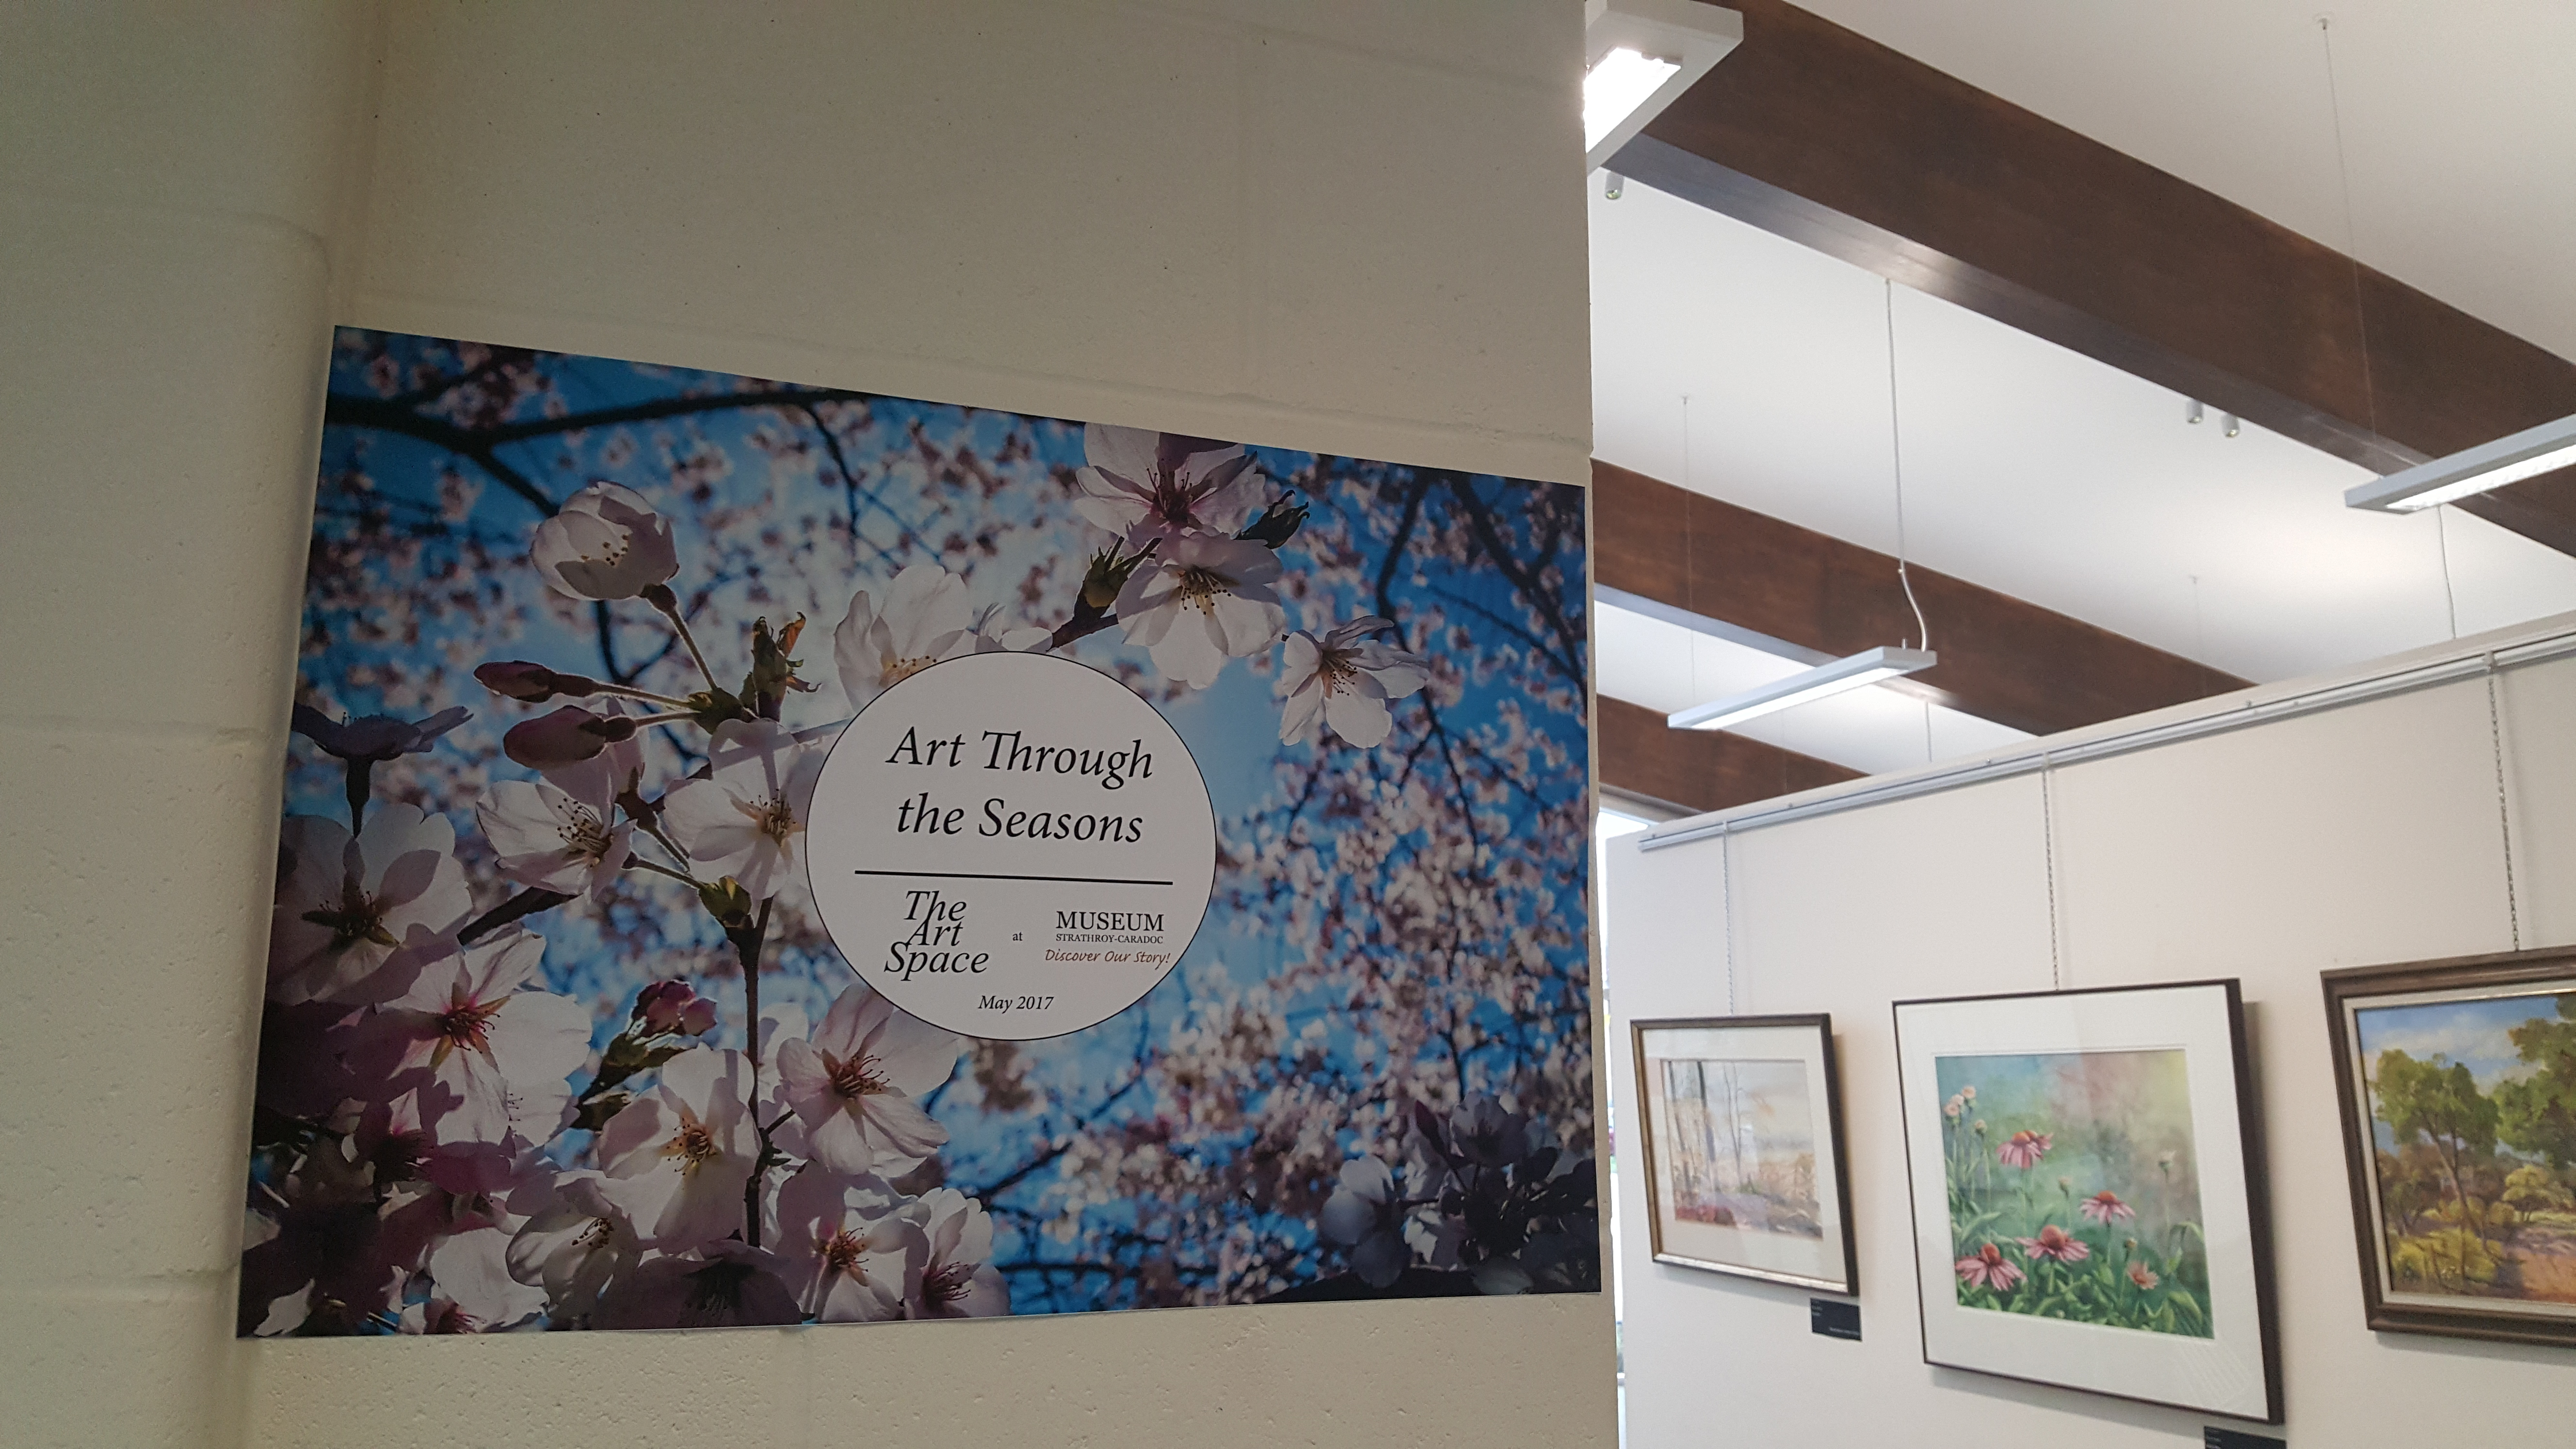 Art Through The Seasons - The Art Space May 2017